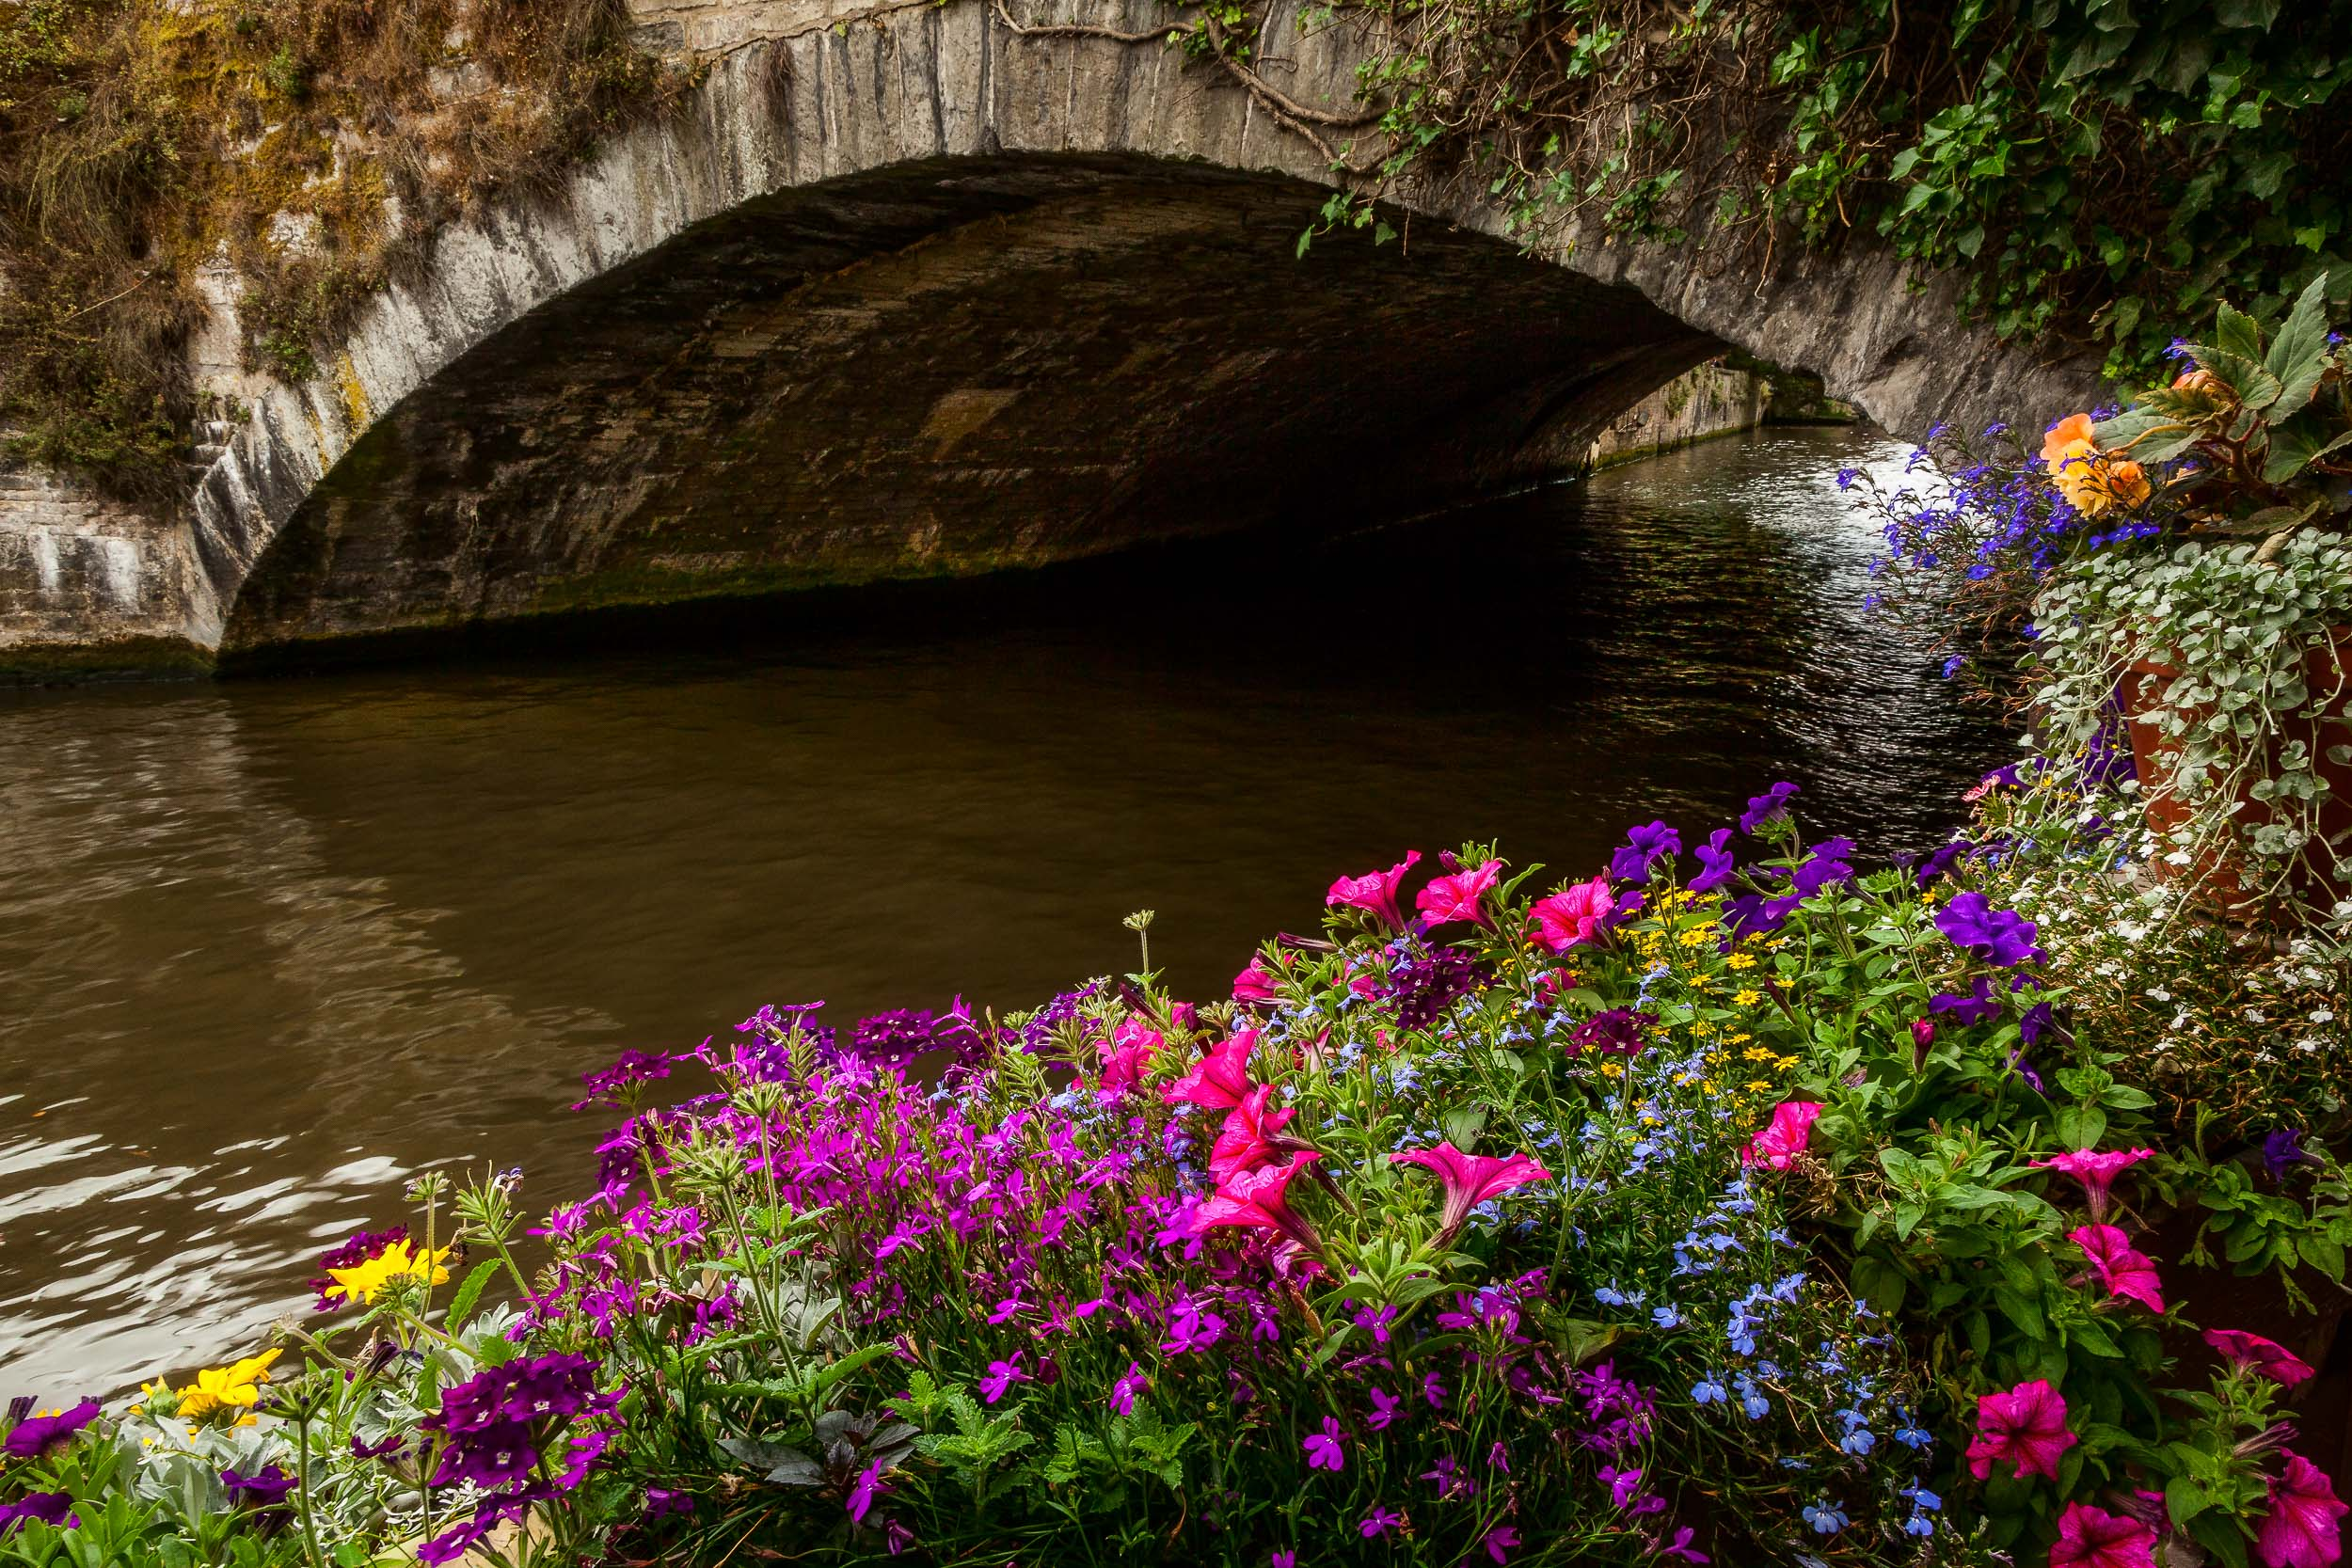 Brightly colored flowers    on a summer's day by the    canal    in    Bruges    (i.e., Brugge)    Belgium   .